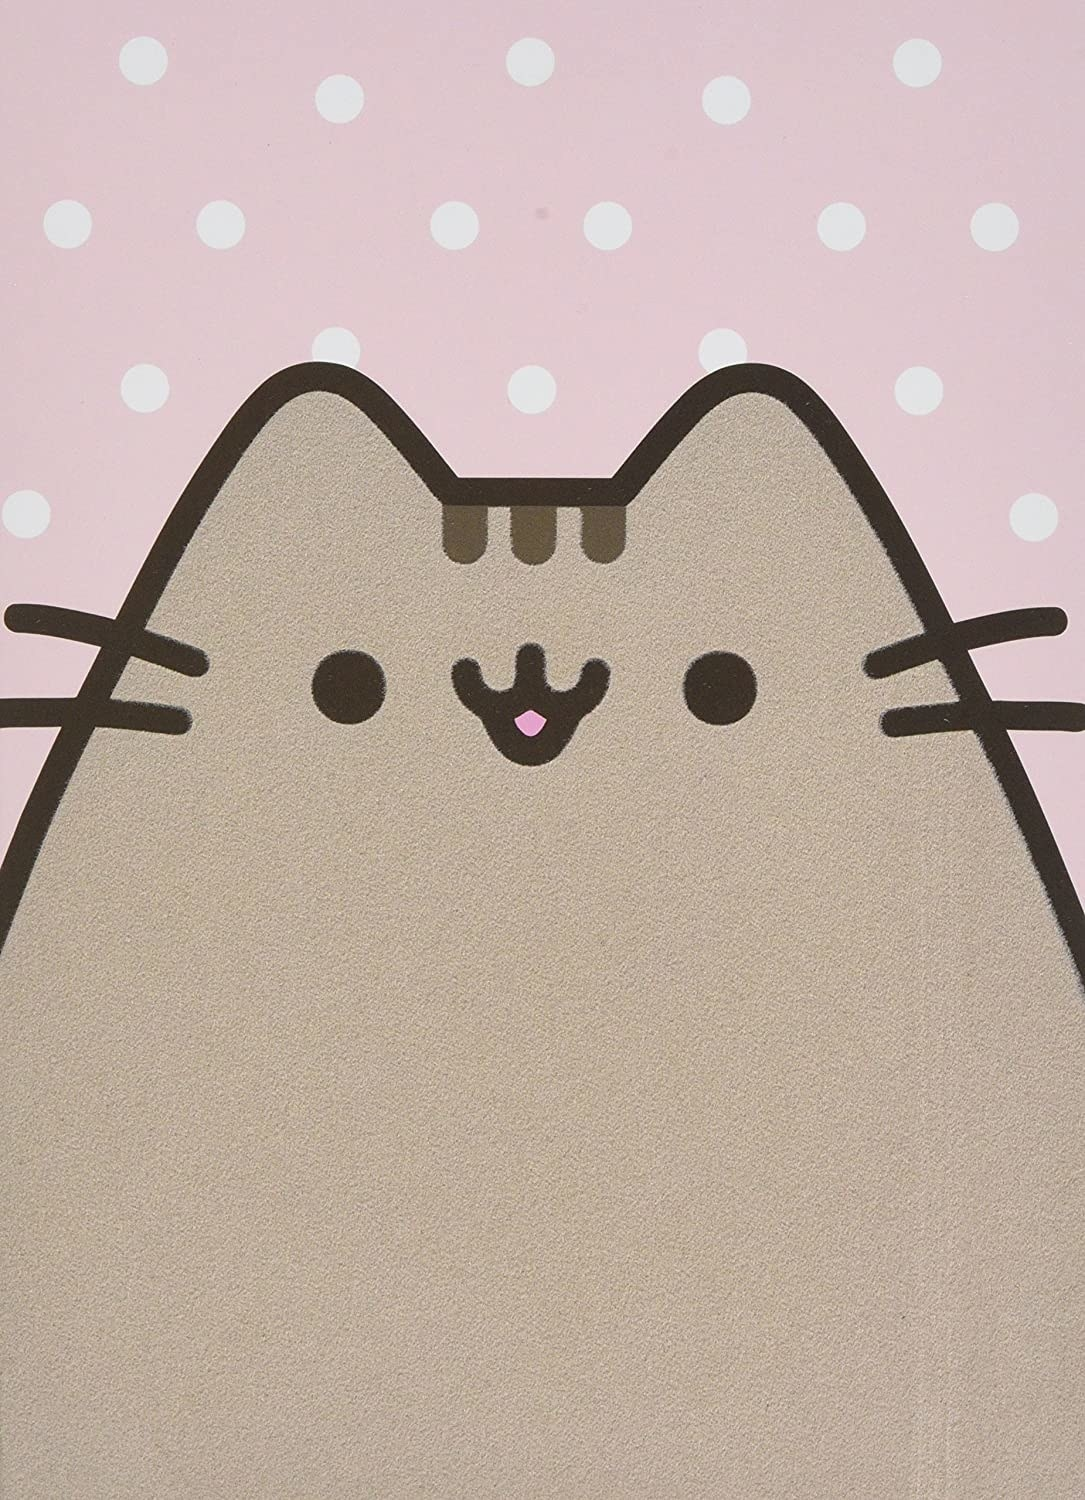 Pusheen cat on the cover of the notebook